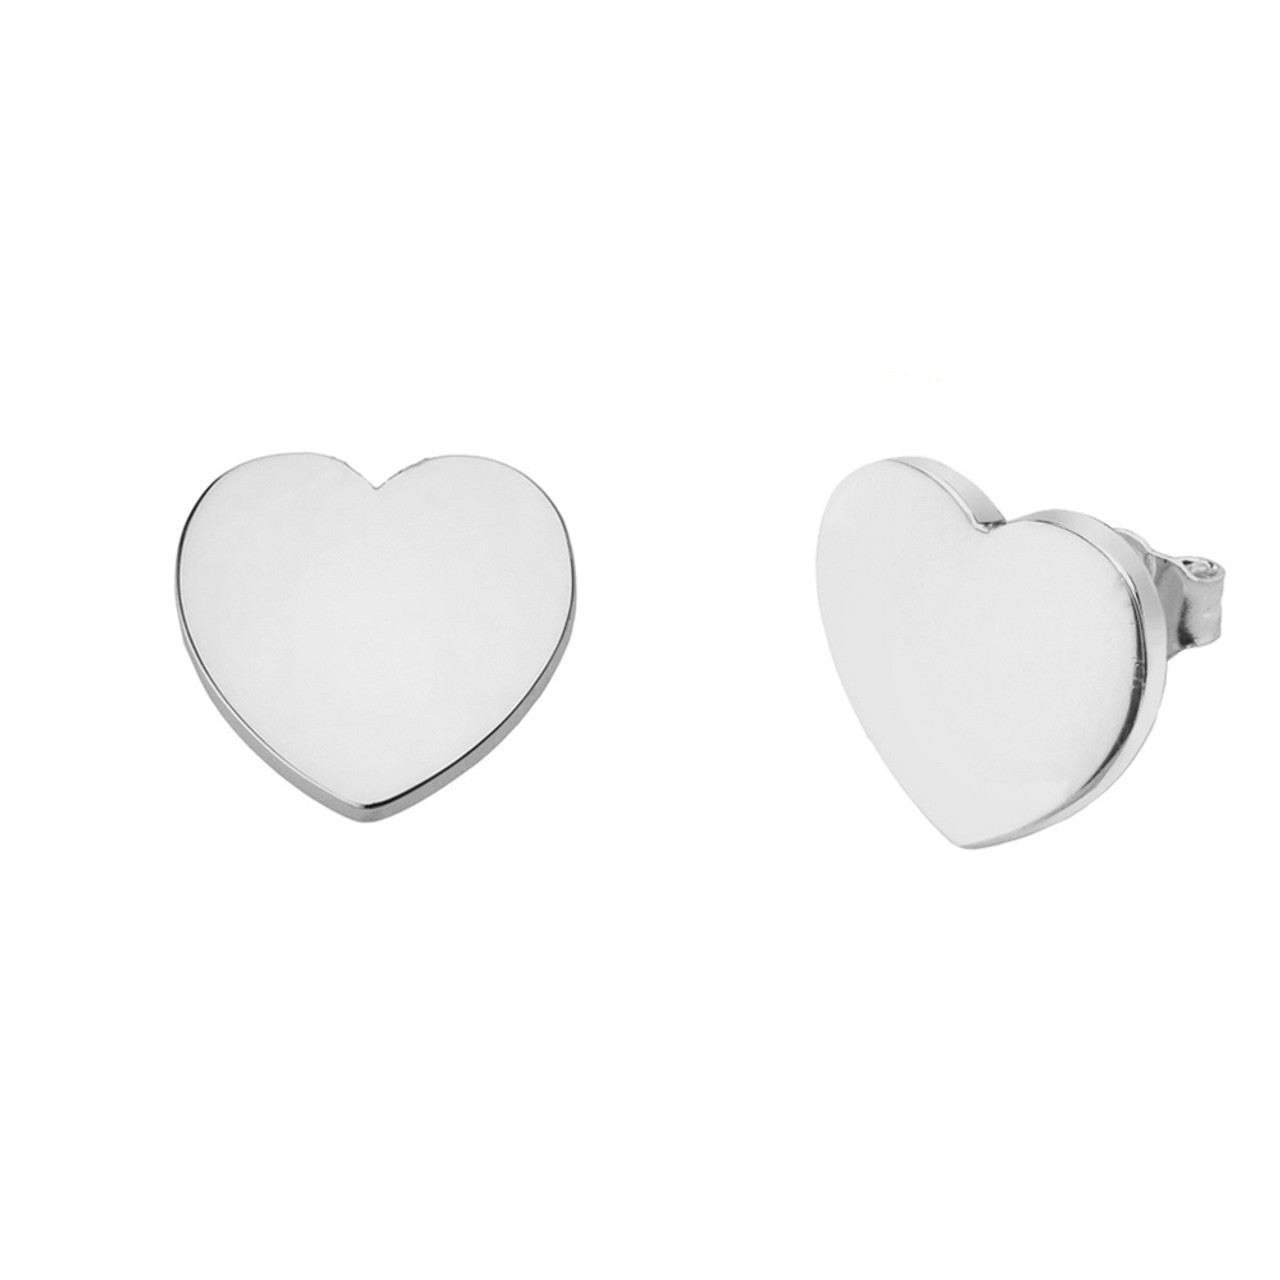 5bc8041b6 Solid White Gold Simple Heart Earrings